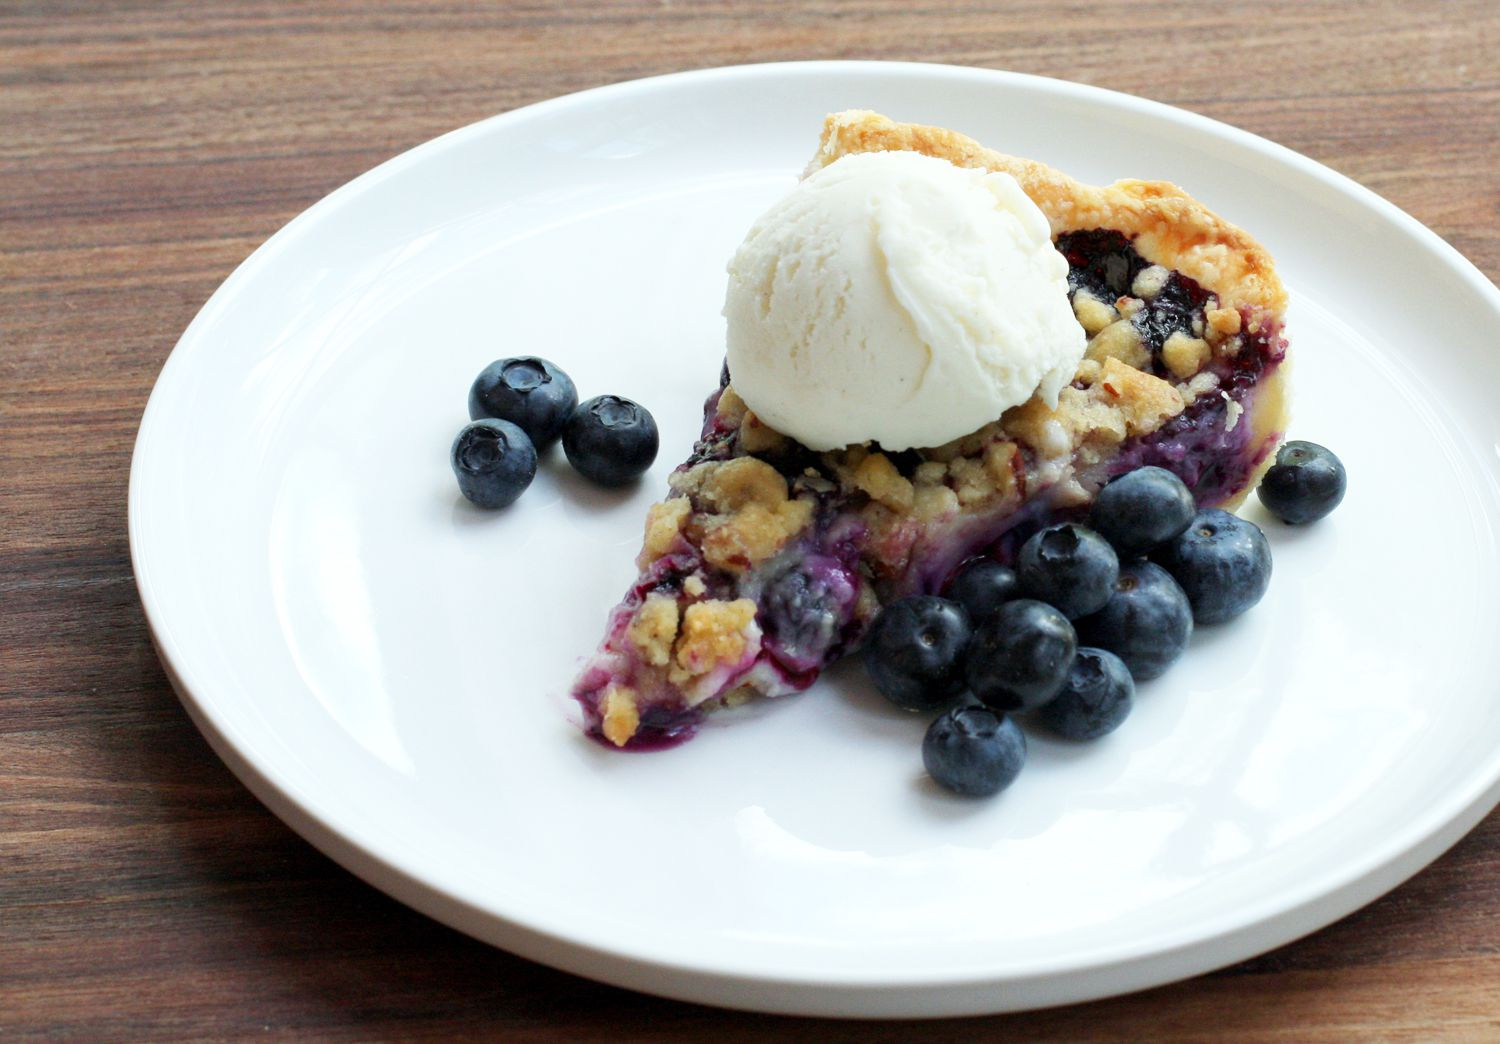 Blueberry Custard Pie Recipe with Streusel Topping